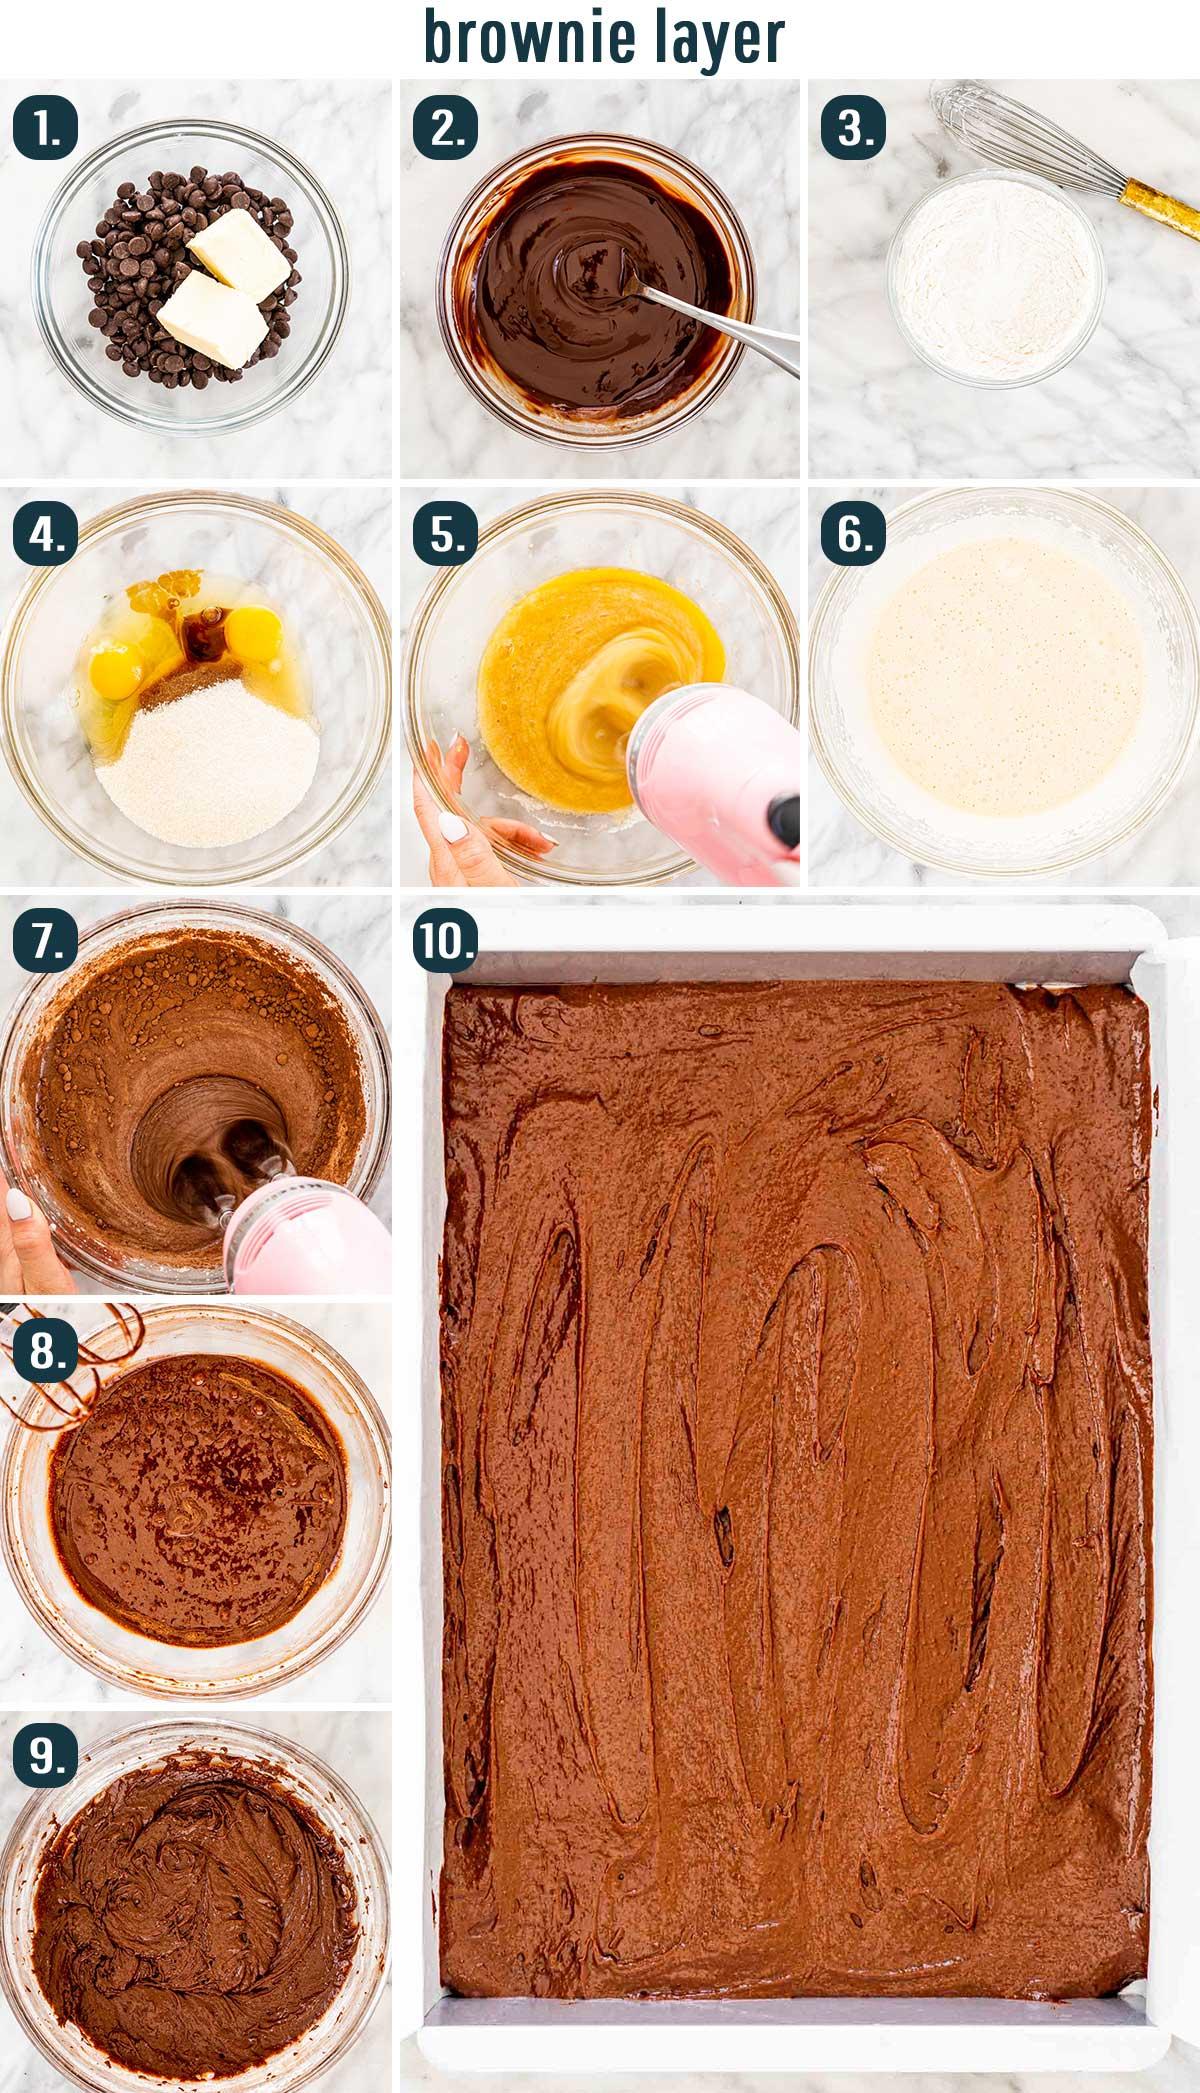 process shot showing how to make brownies